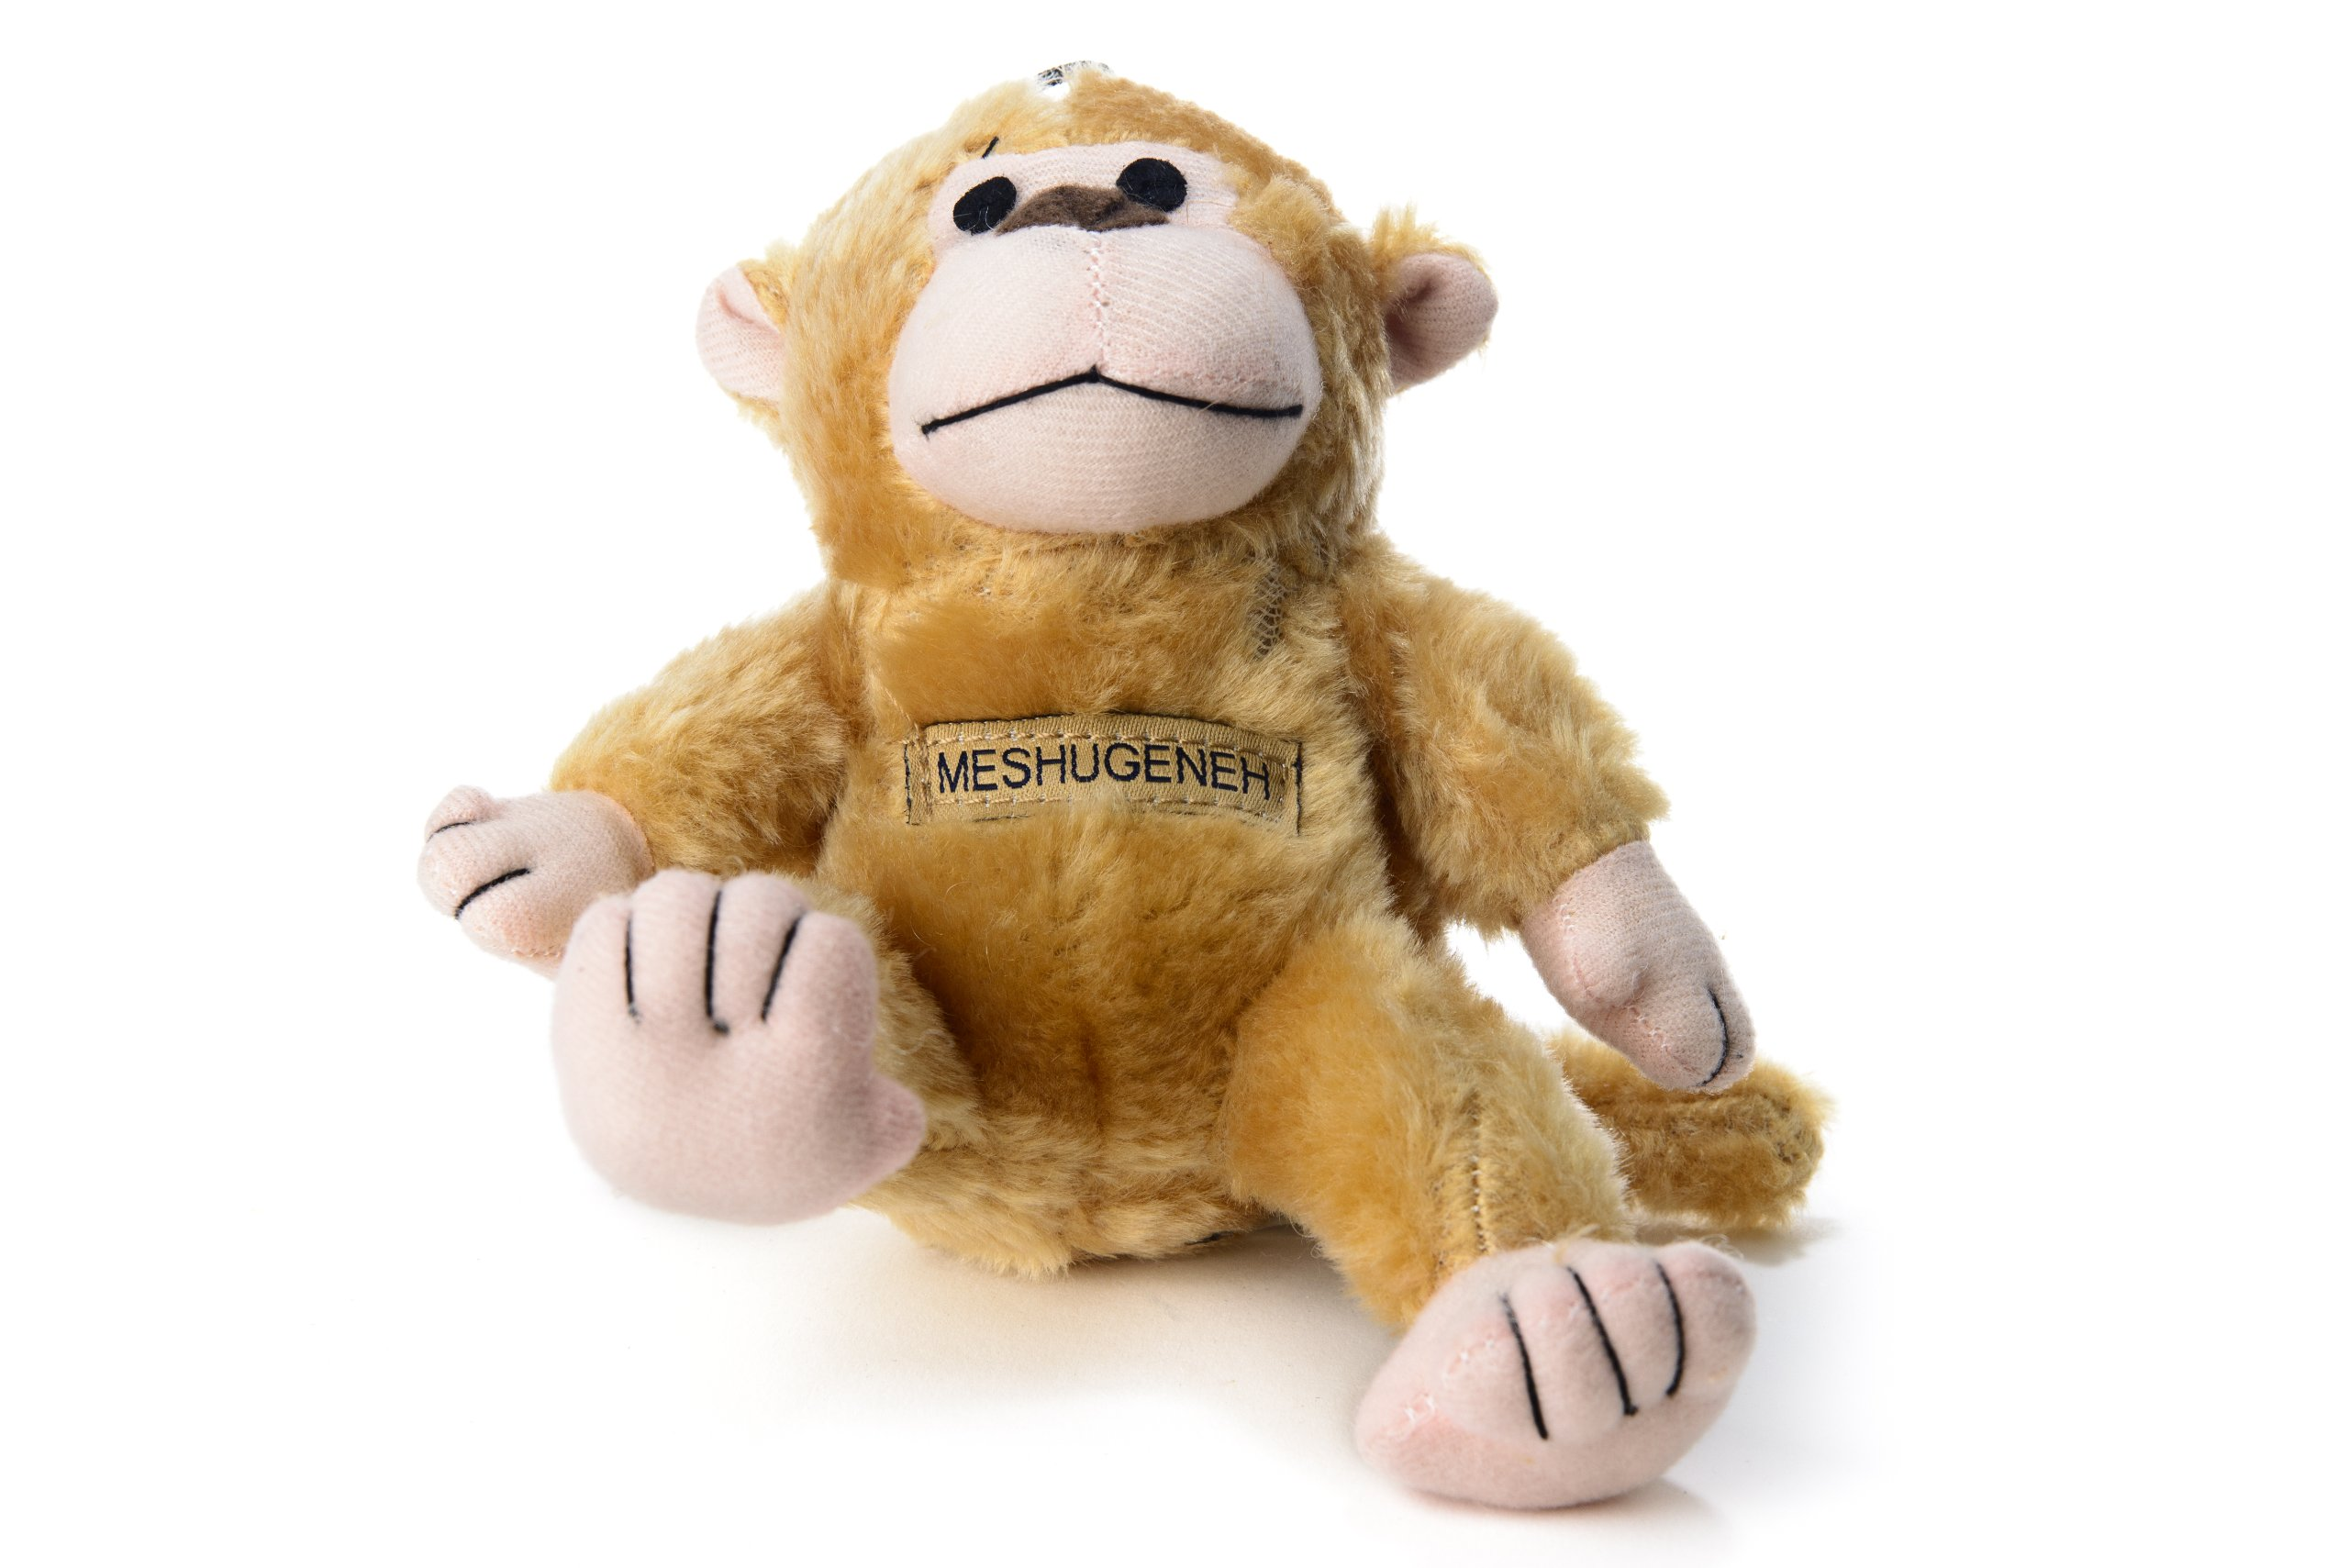 Copa Judaica Chewish Treat Meshugenah Monkey Squeaker Plush Dog Toy, Light Brown